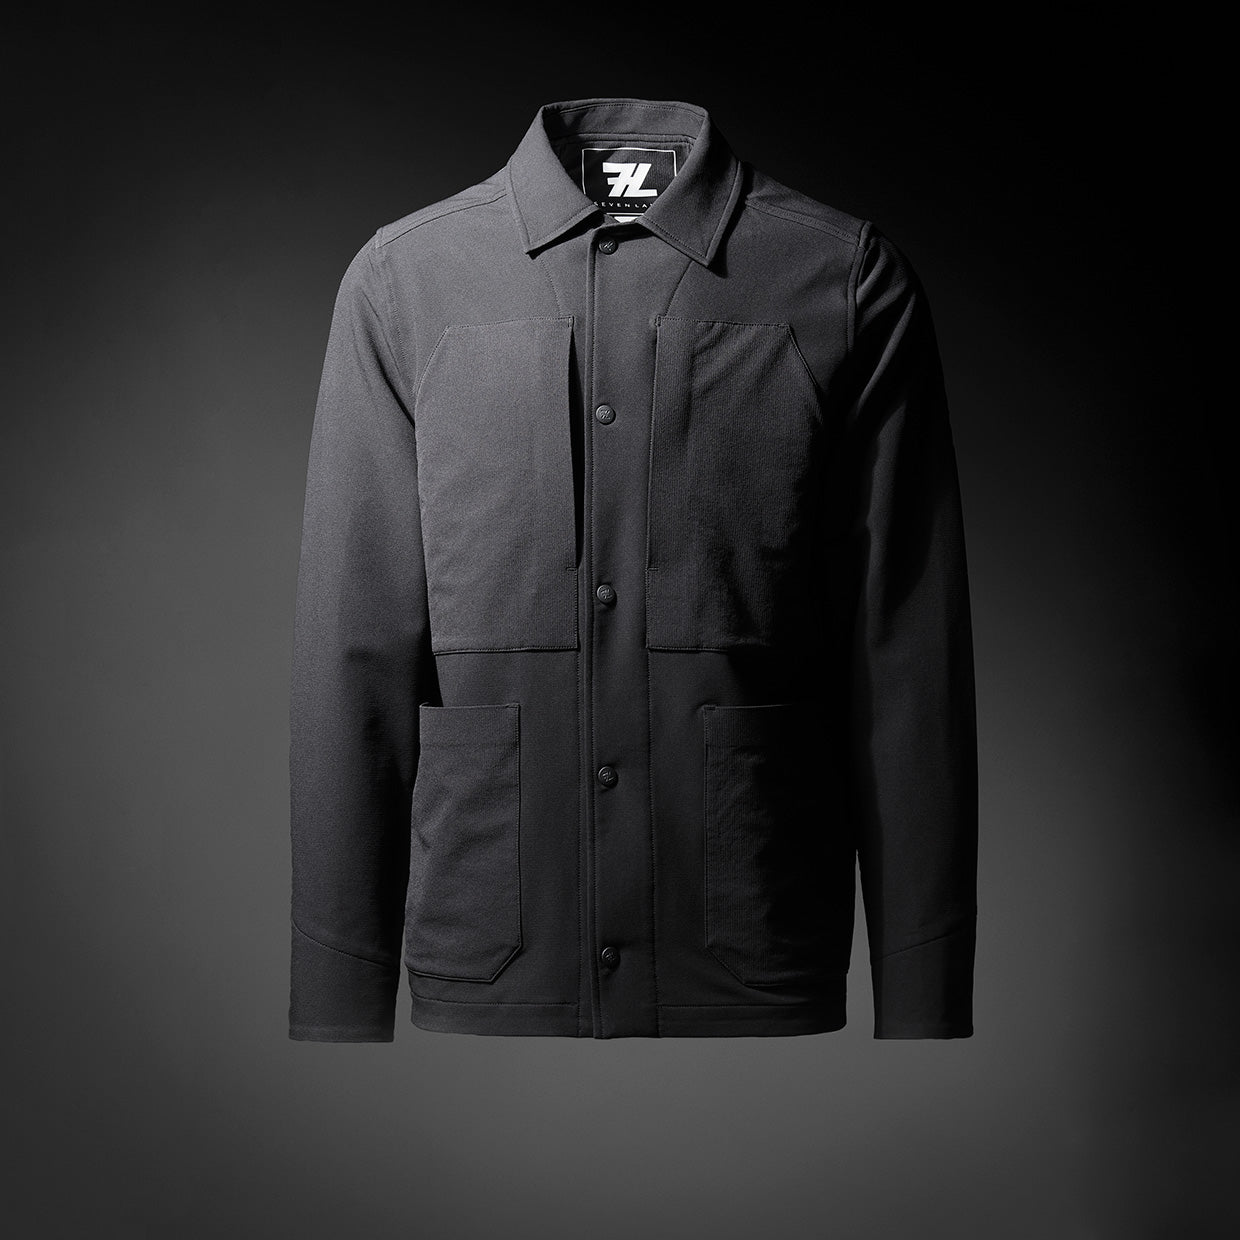 7L STRETCH OVERSHIRT